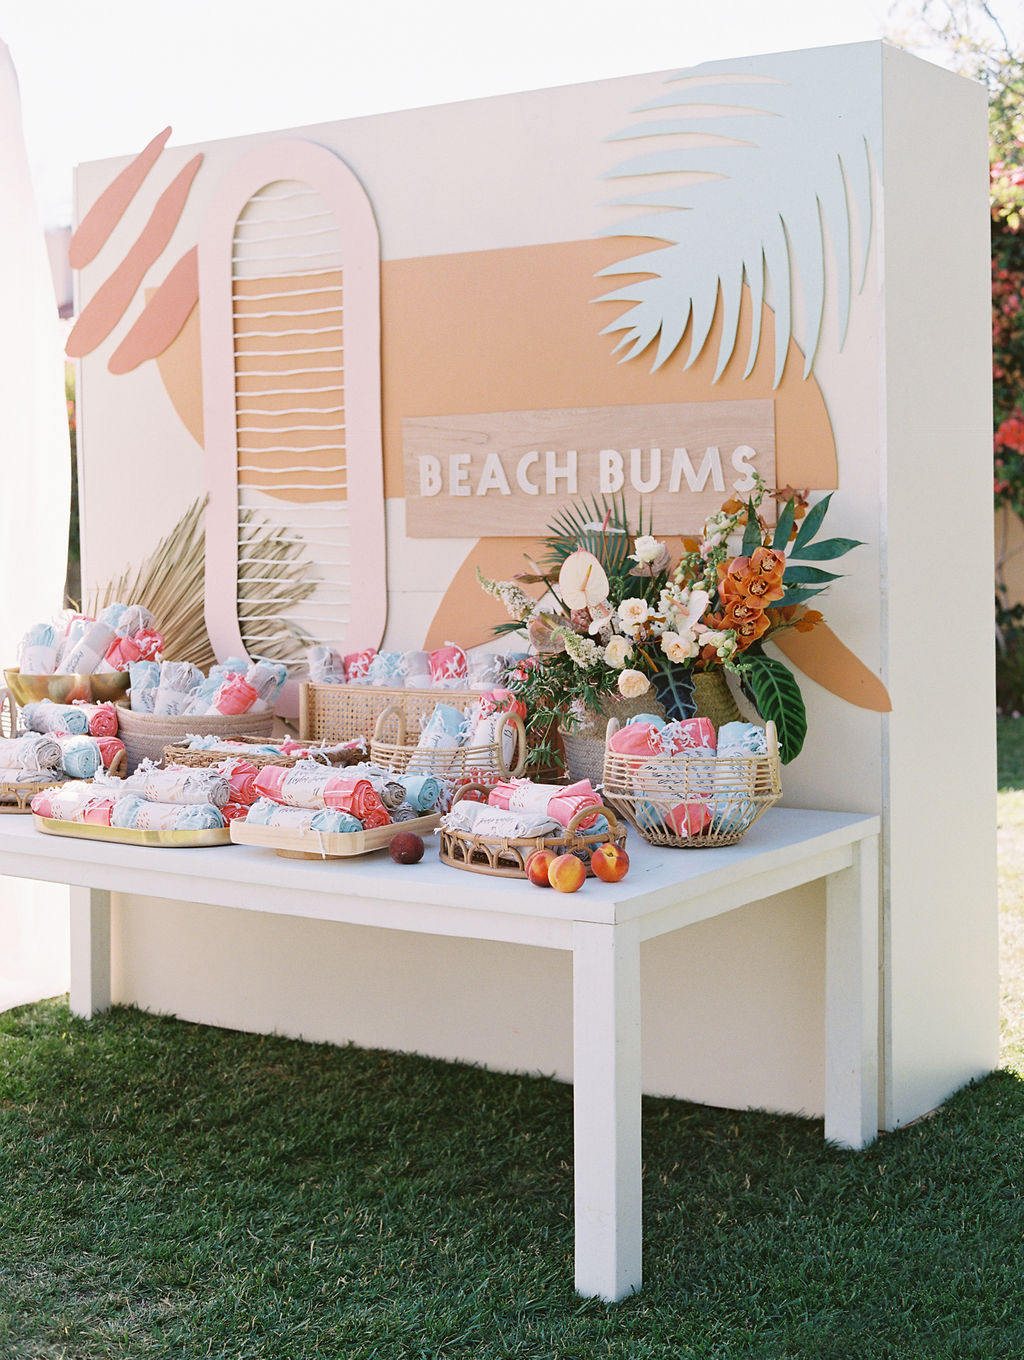 sara trisdan wedding beach bums station with escort card towels